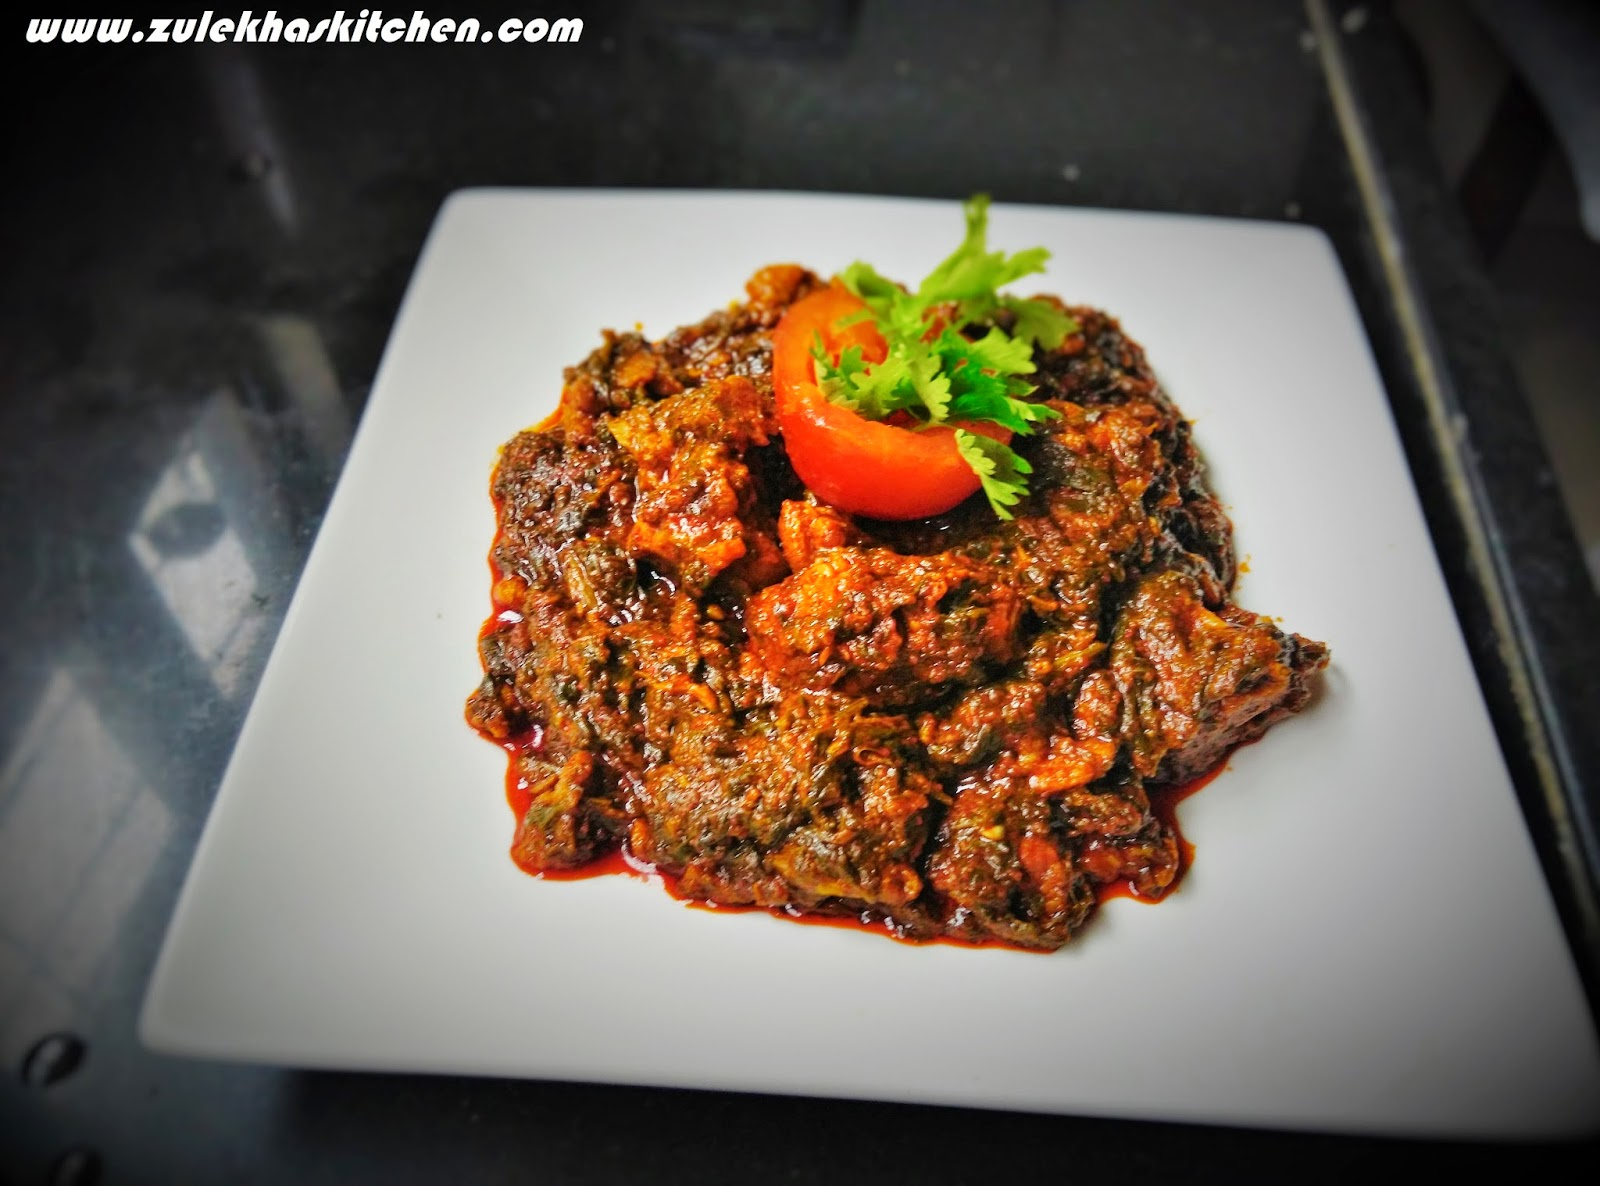 Goat liver with dill leaves indian kitchen cooking recipes - In This Recipe All The Vegetables Blend So Well That It Gives Out The Perfect Taste Dill Leaves Are Some What Sweet Spinach That Is Packed Full Of Iron